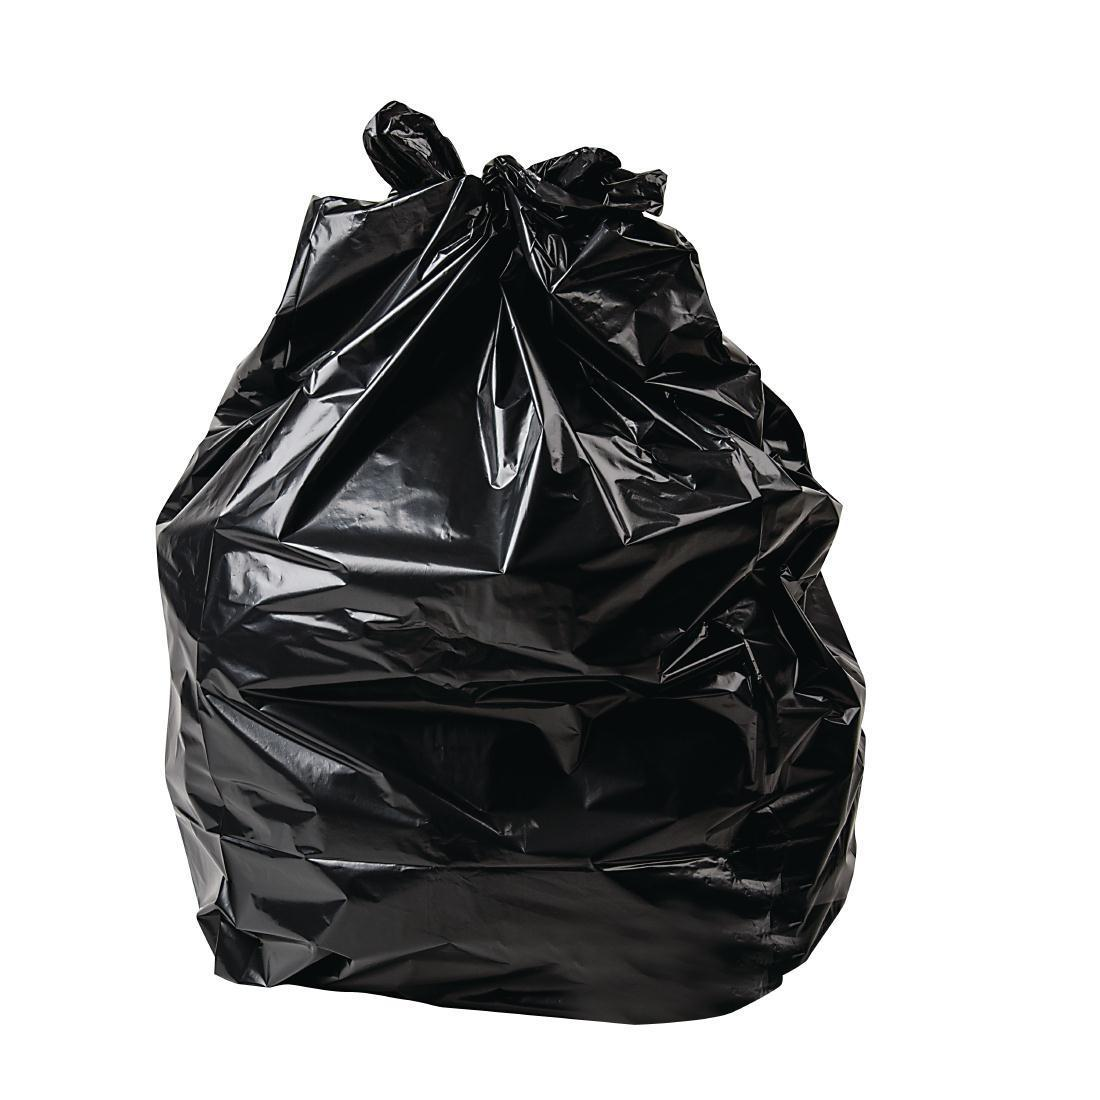 Jantex Large Extra Heavy Duty Black Bin Bags 90Ltr